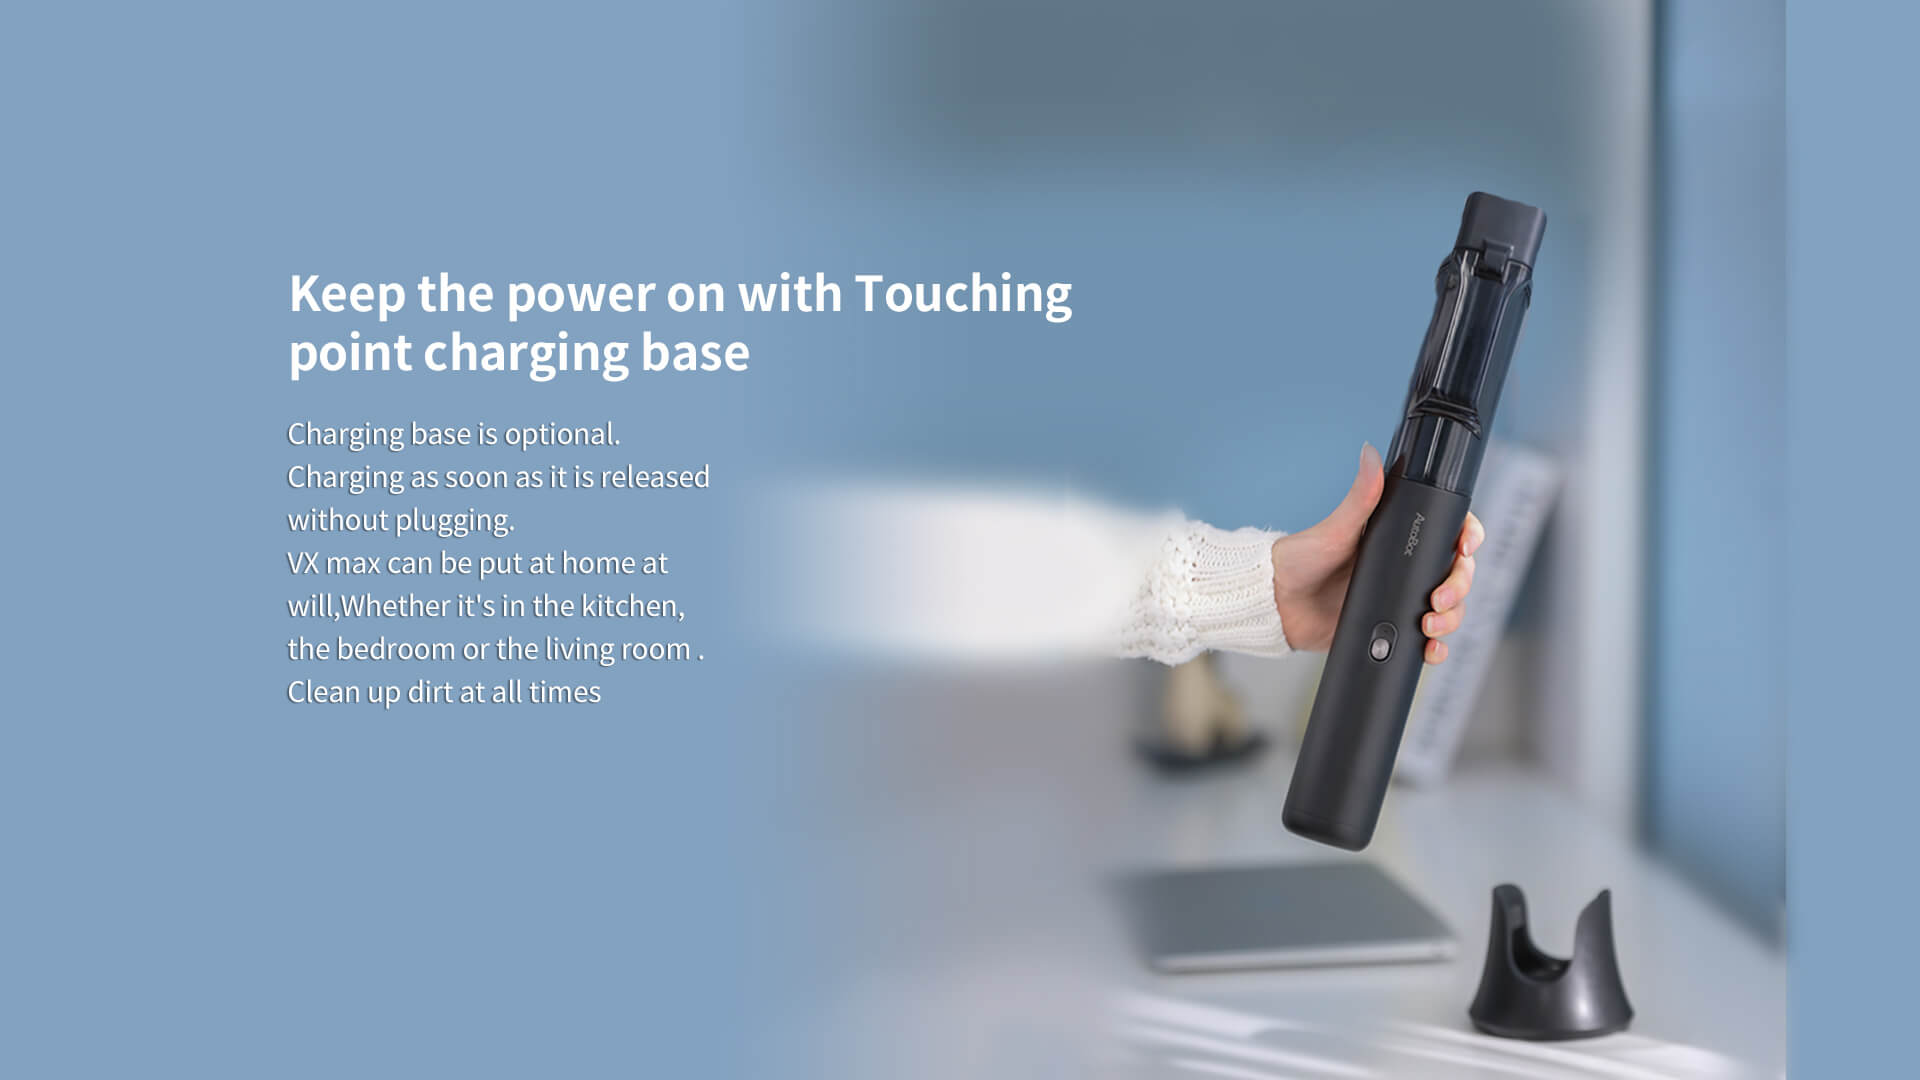 Keep the power on with touching point charging base, charging base is optionalcharging as soon as it is released without plugging.